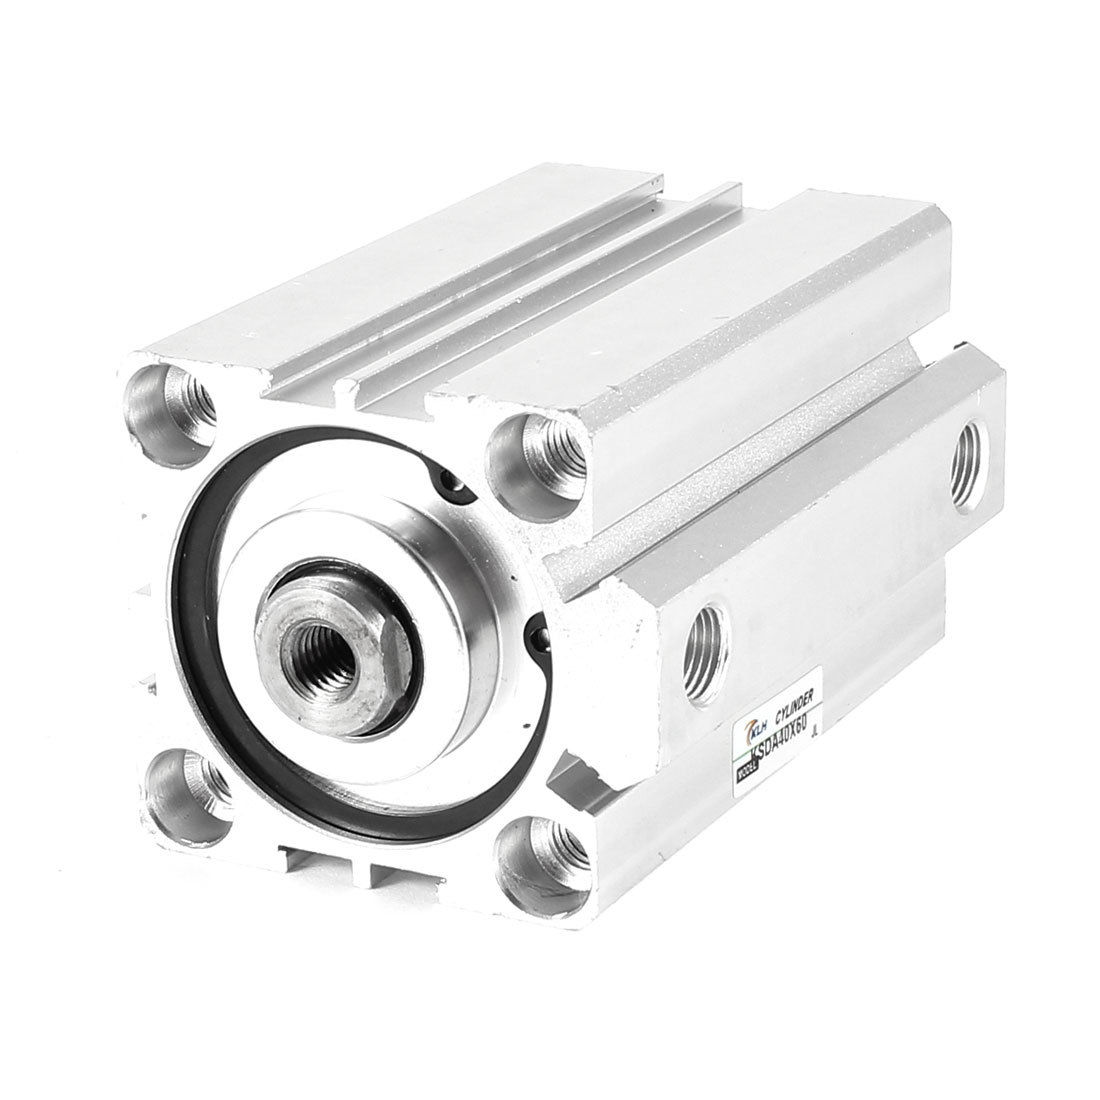 1 Pcs 63mm Bore 80mm Stroke Stainless steel Pneumatic Air Cylinder SDA63-80<br>